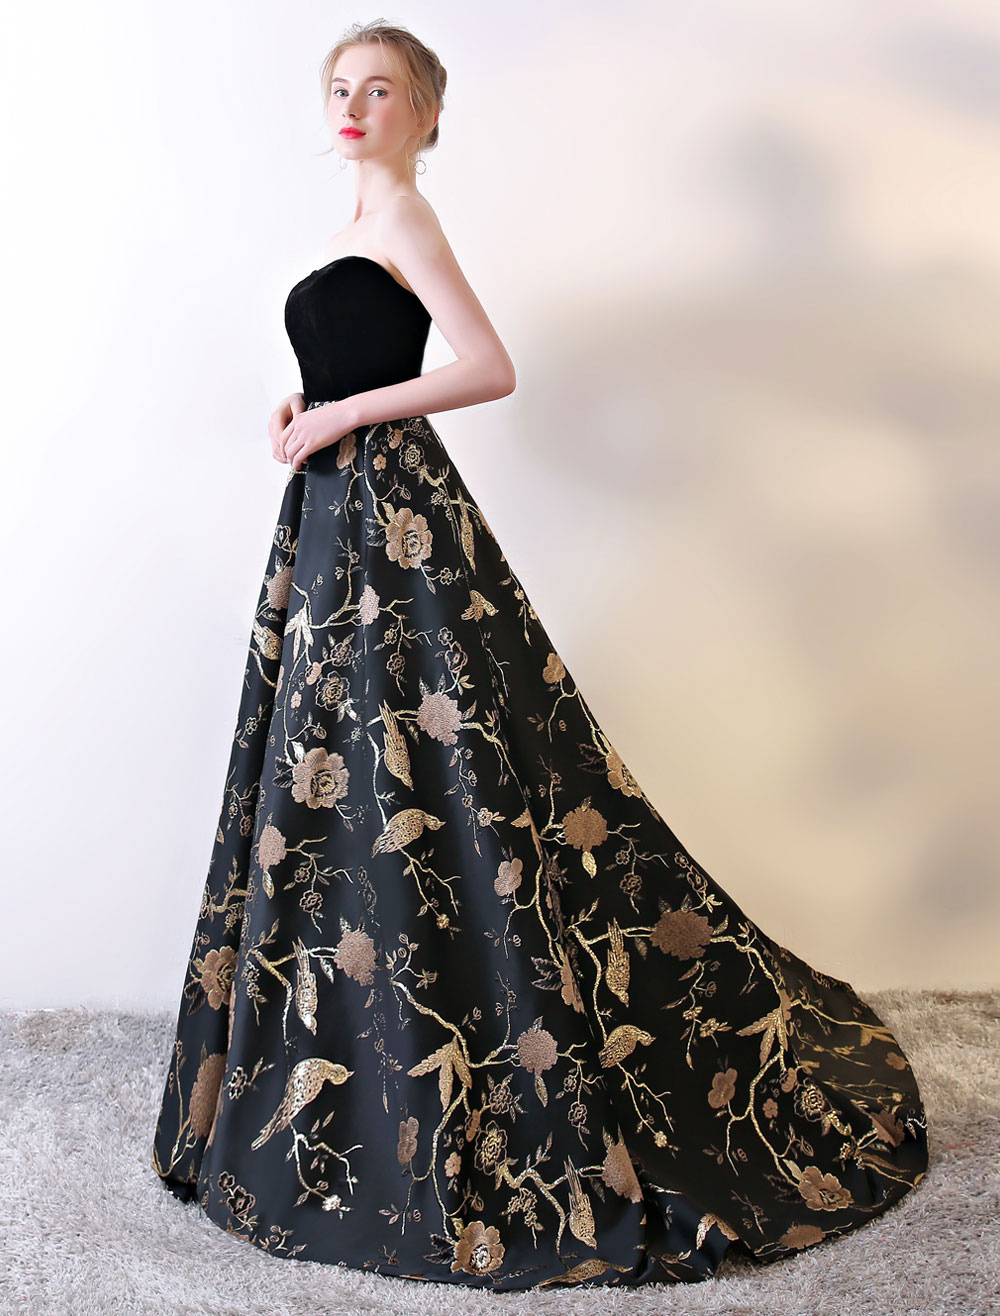 Buy Strapless Prom Dress Black Floral Embroidered Prom Gown Velvet Satin Sweetheart Neckline Formal Occasion Dress With Train for $171.59 in Milanoo store